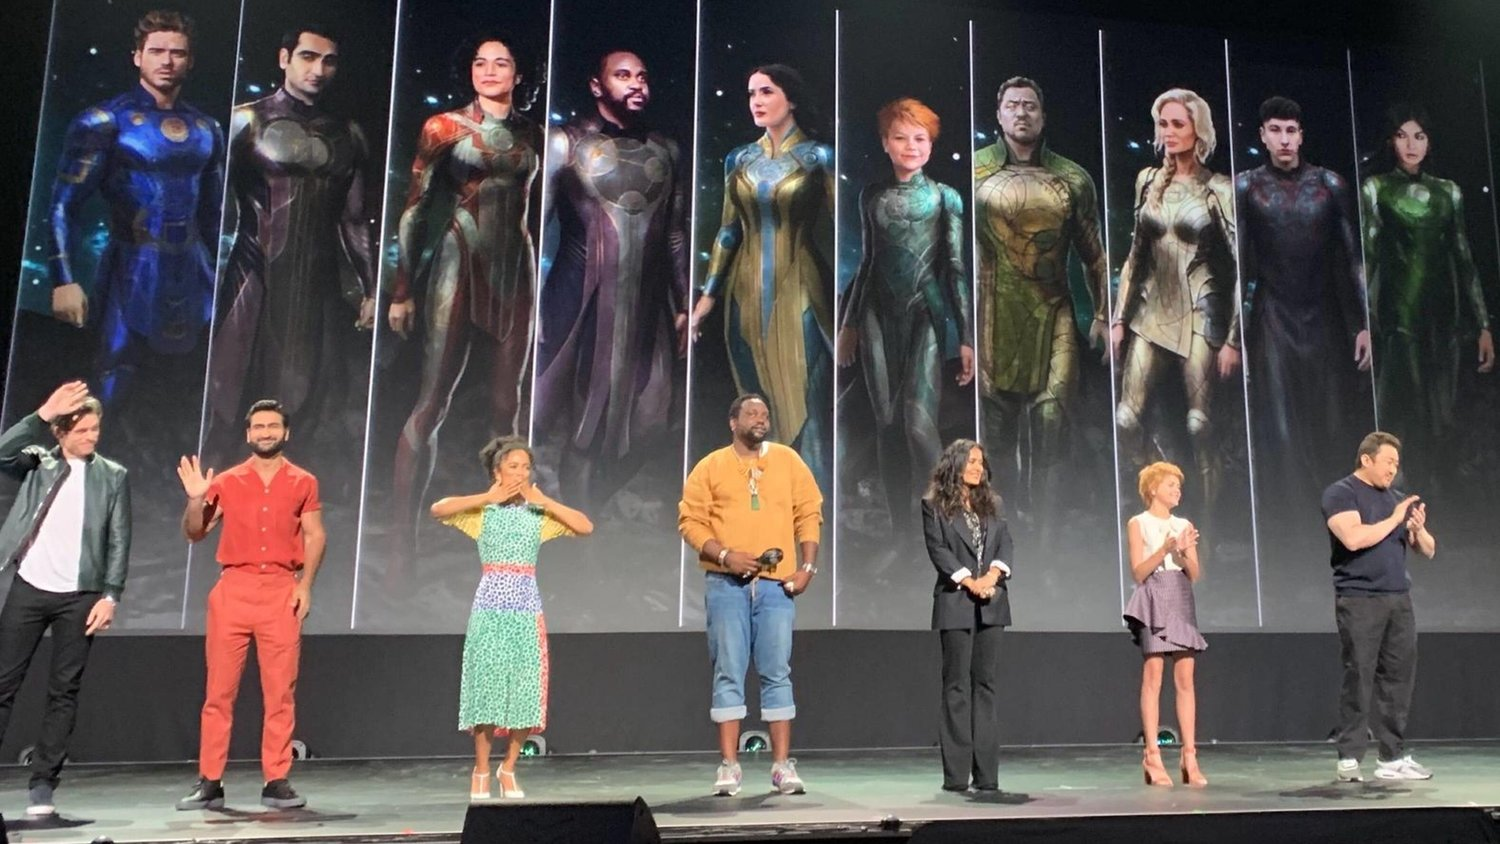 New Set Photos From Marvel's THE ETERNALS Show the Cast in Their ...